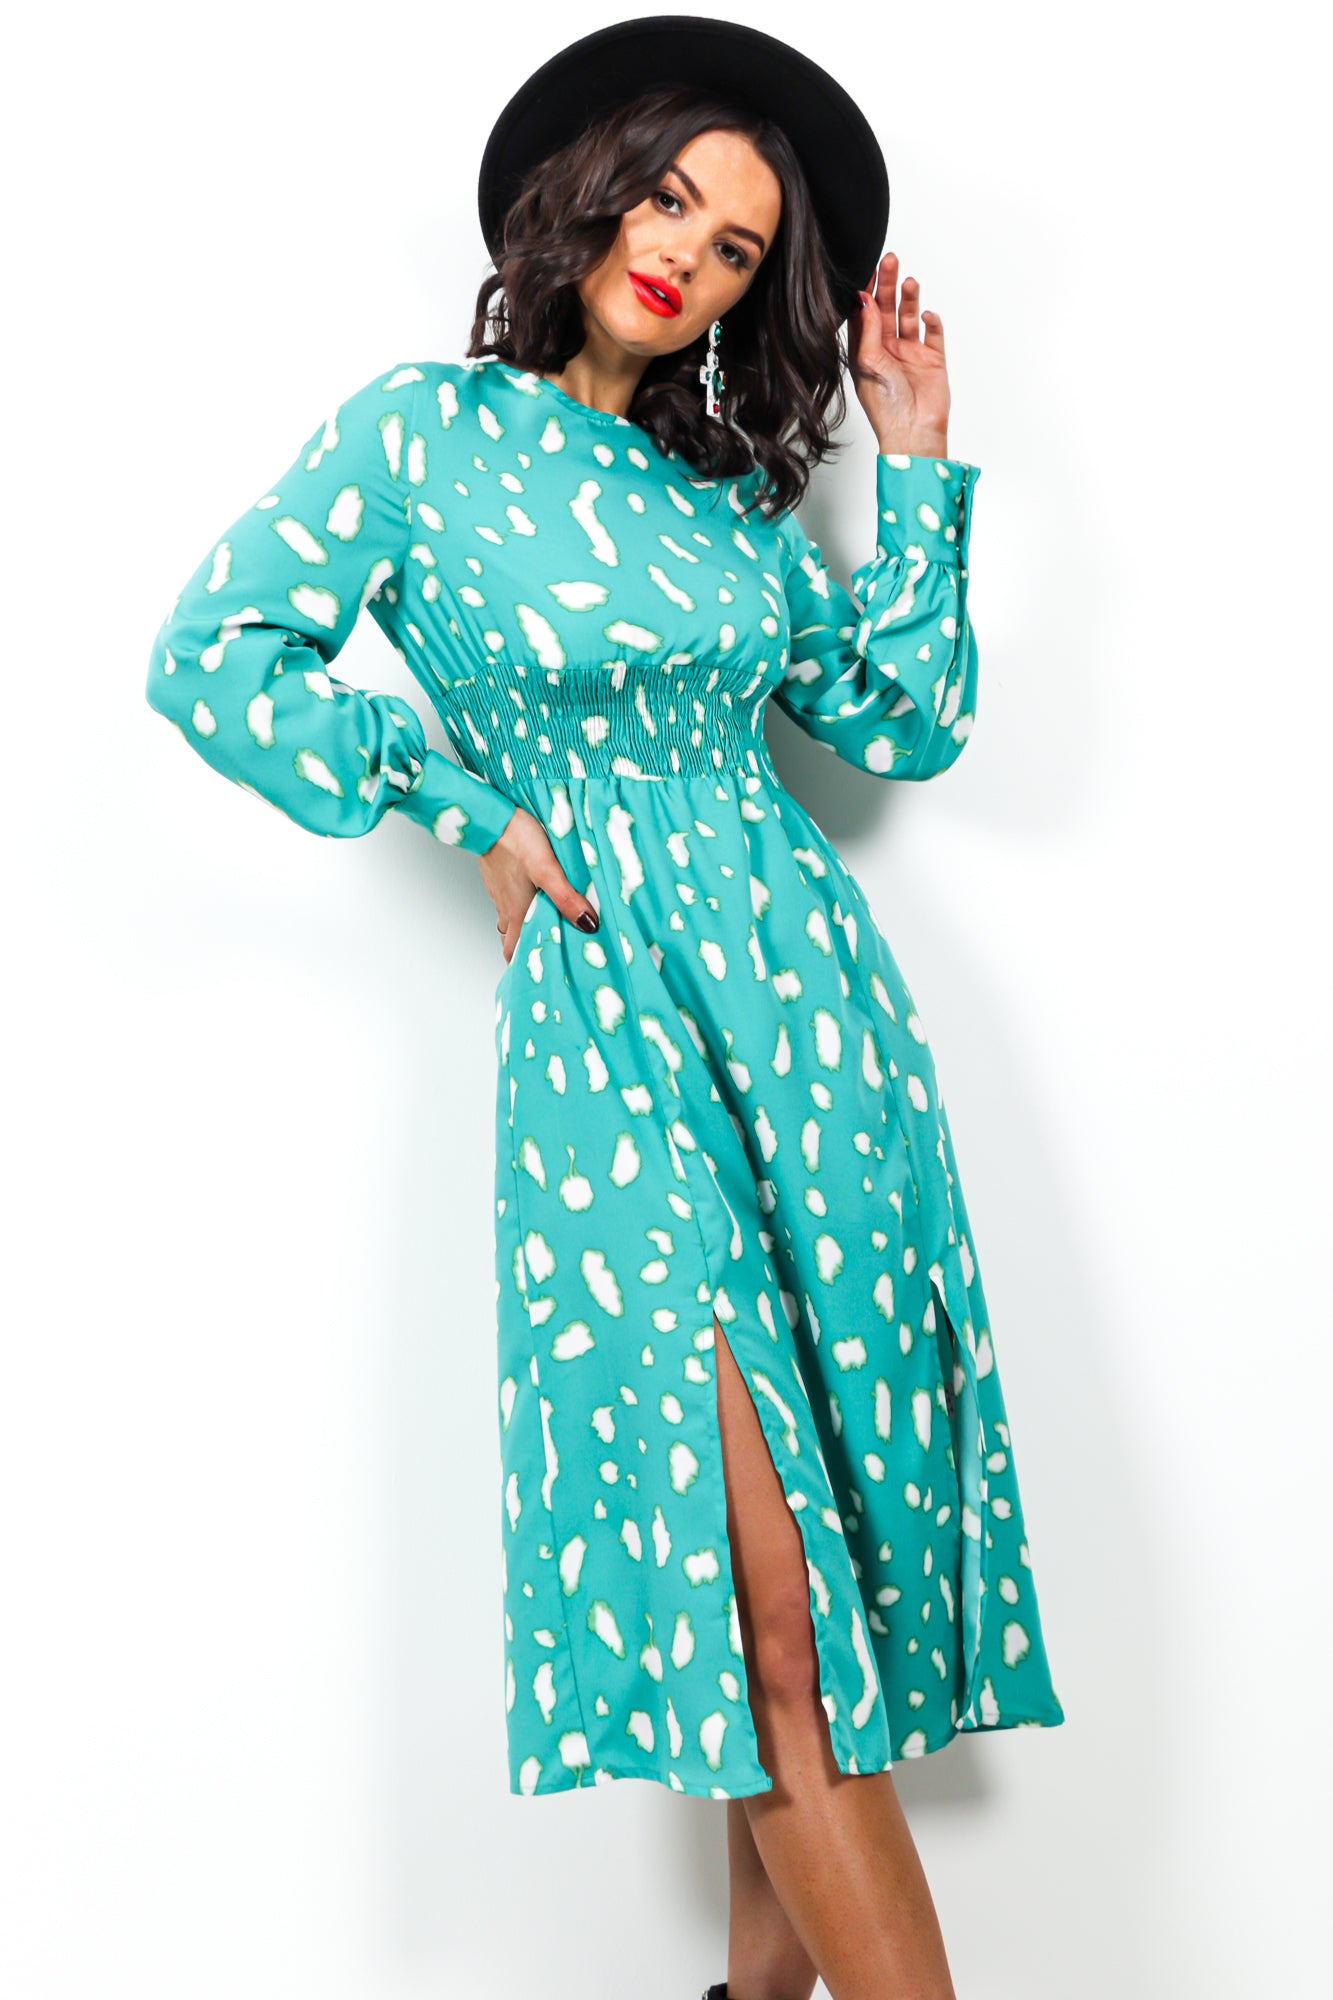 Wild Heart - Dress In TEAL